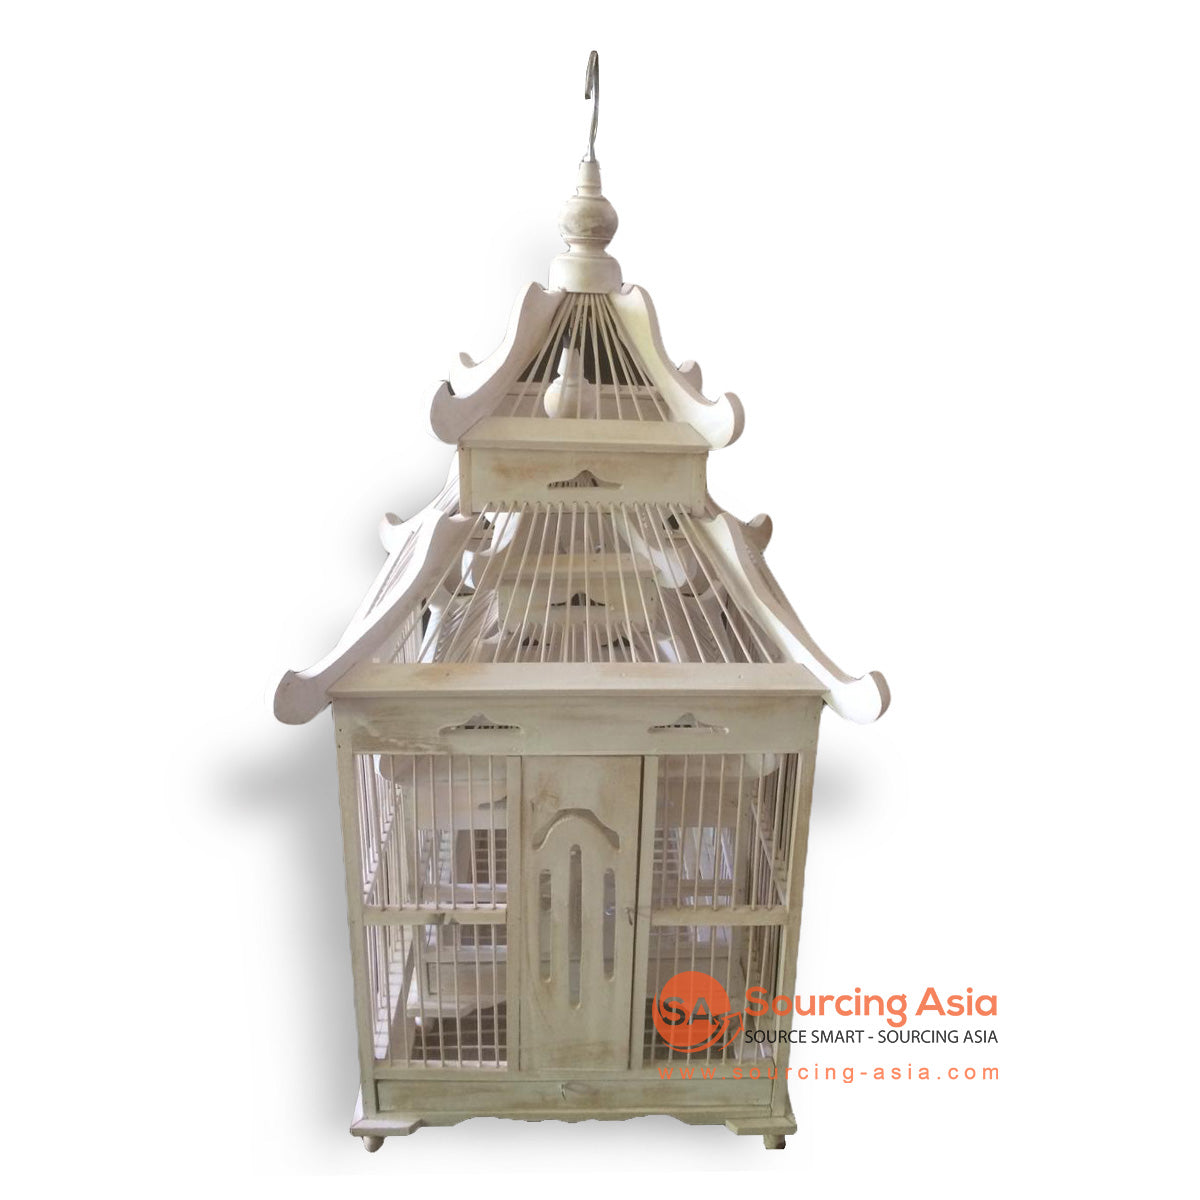 SM053-1 SET OF 2 BIRD CAGES